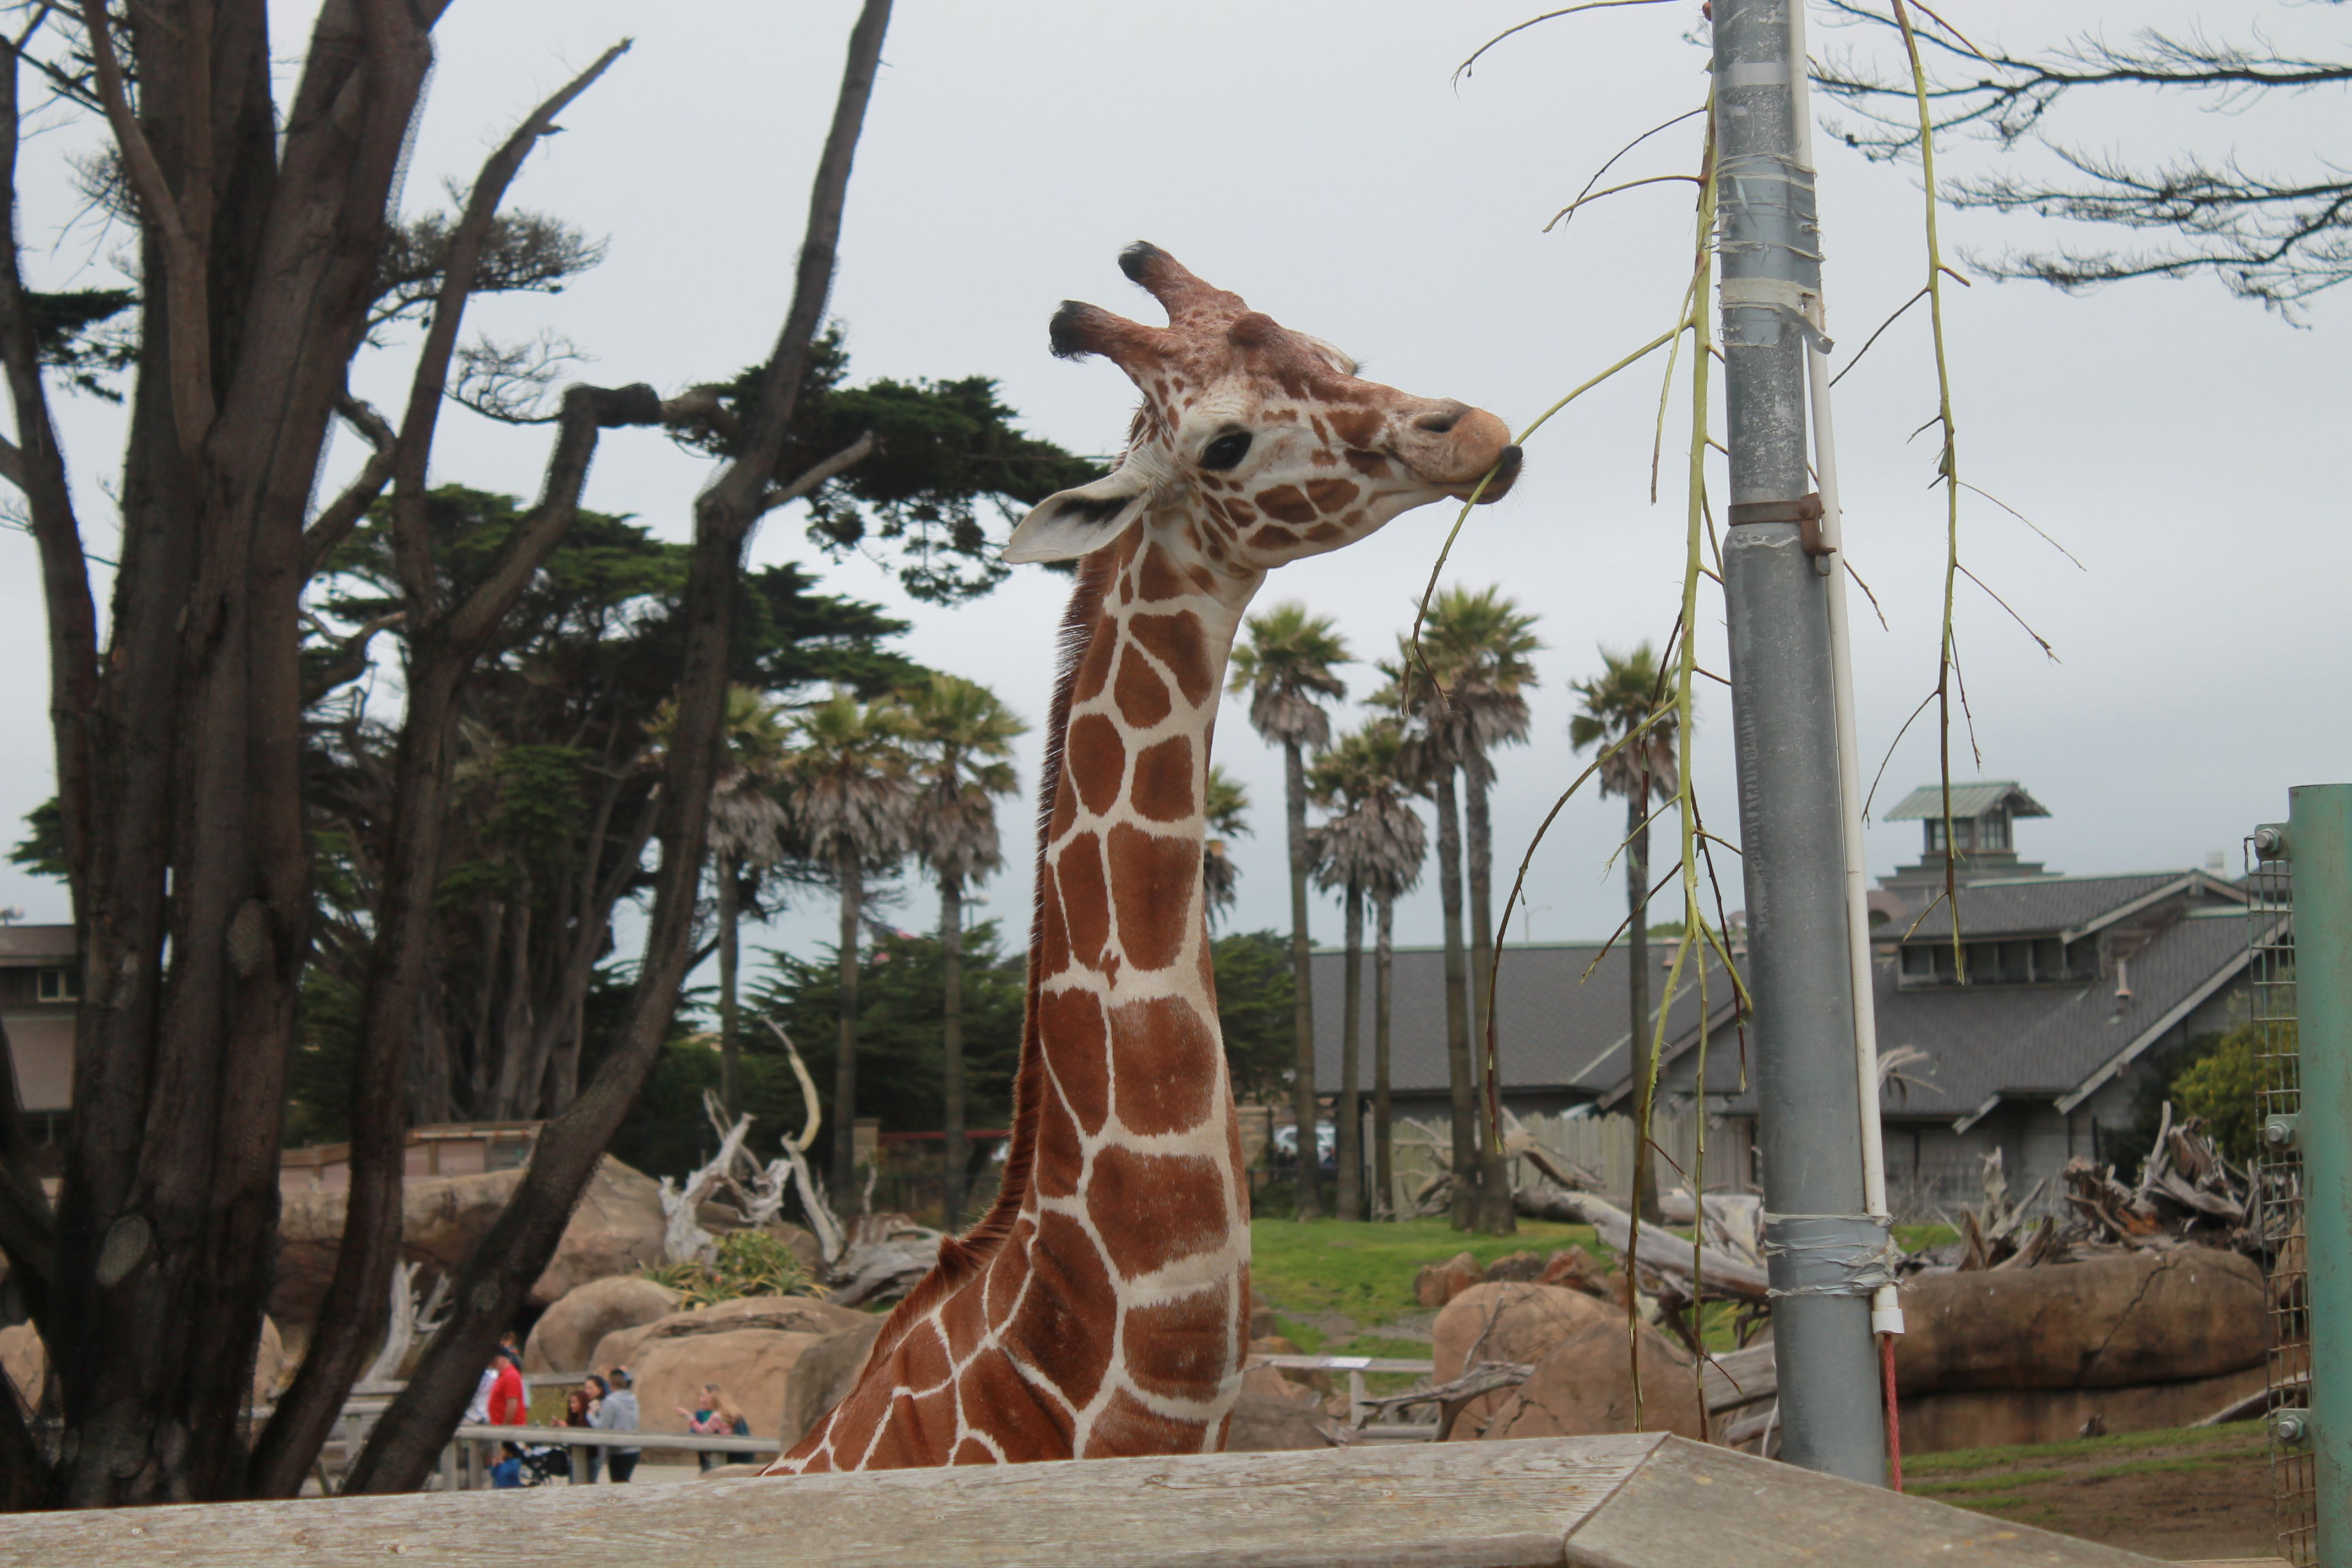 Went to the zoo 7/1/2014